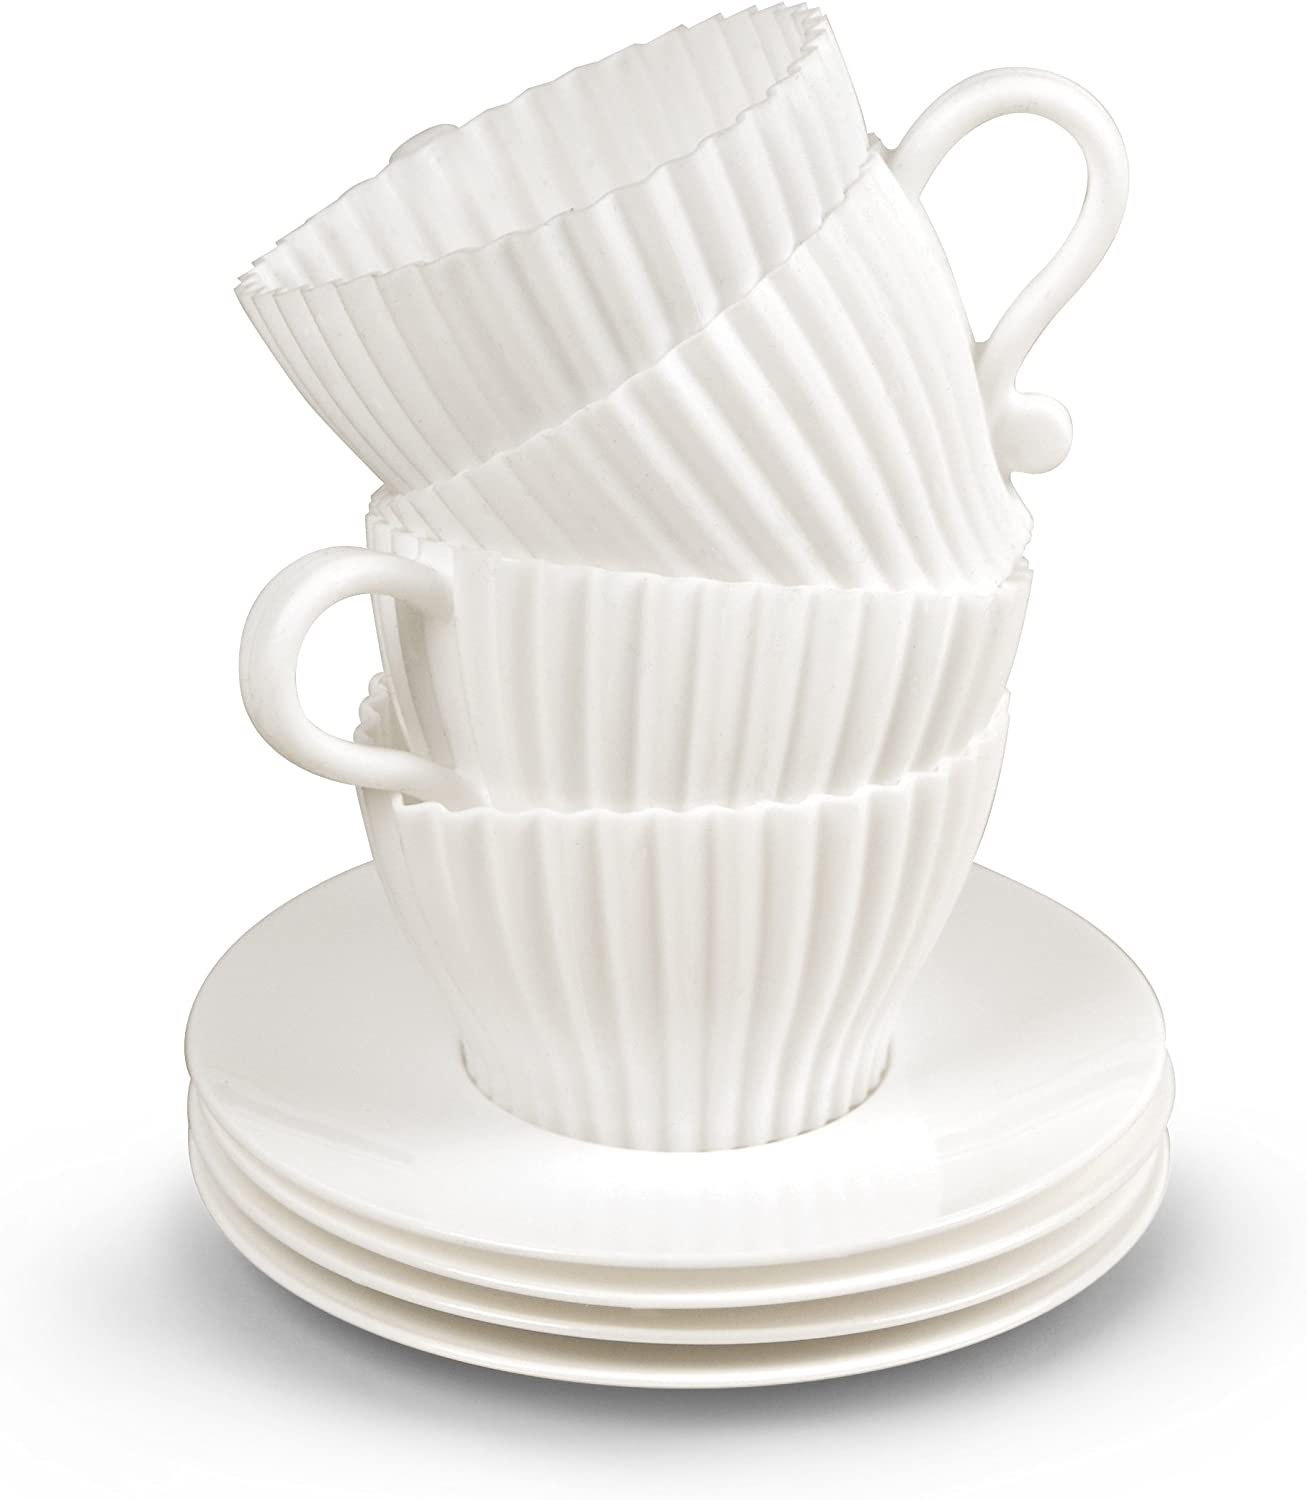 Genuine Fred TEACUPCAKES Baking Cups Set Max 63% OFF of Saucers 4 San Diego Mall and